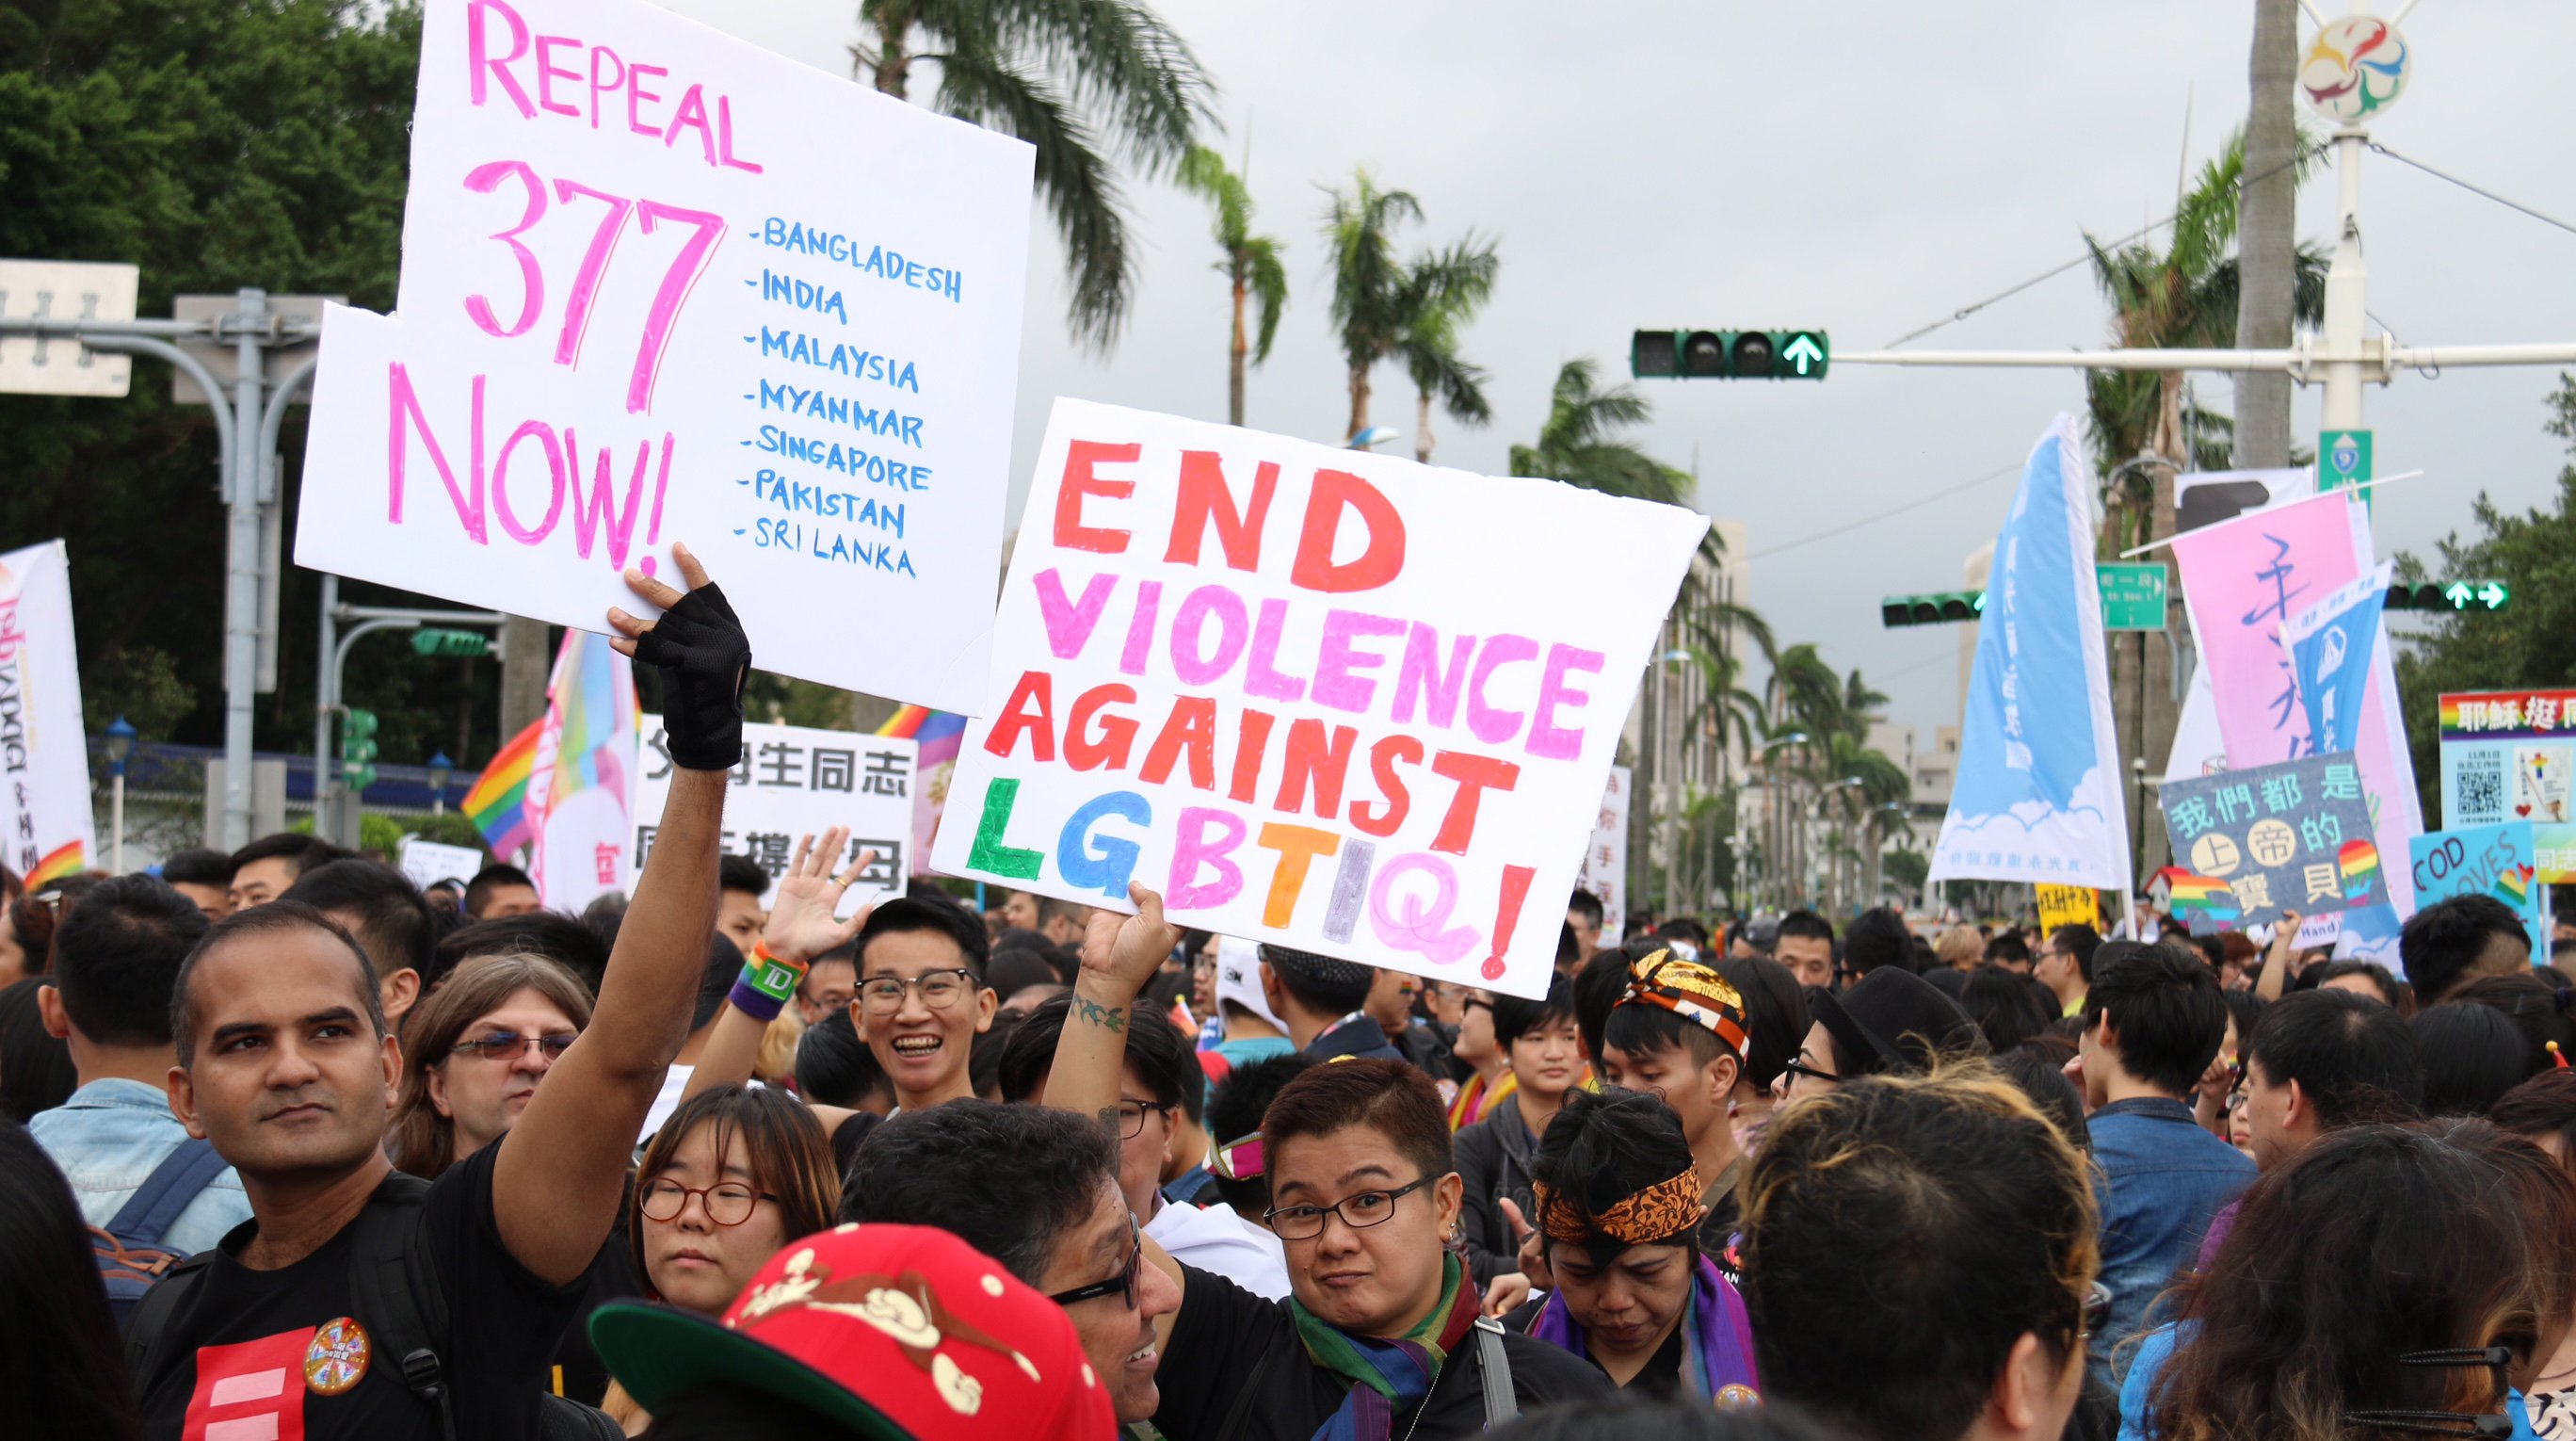 Malaysia: We must decriminalise sex between consenting adults